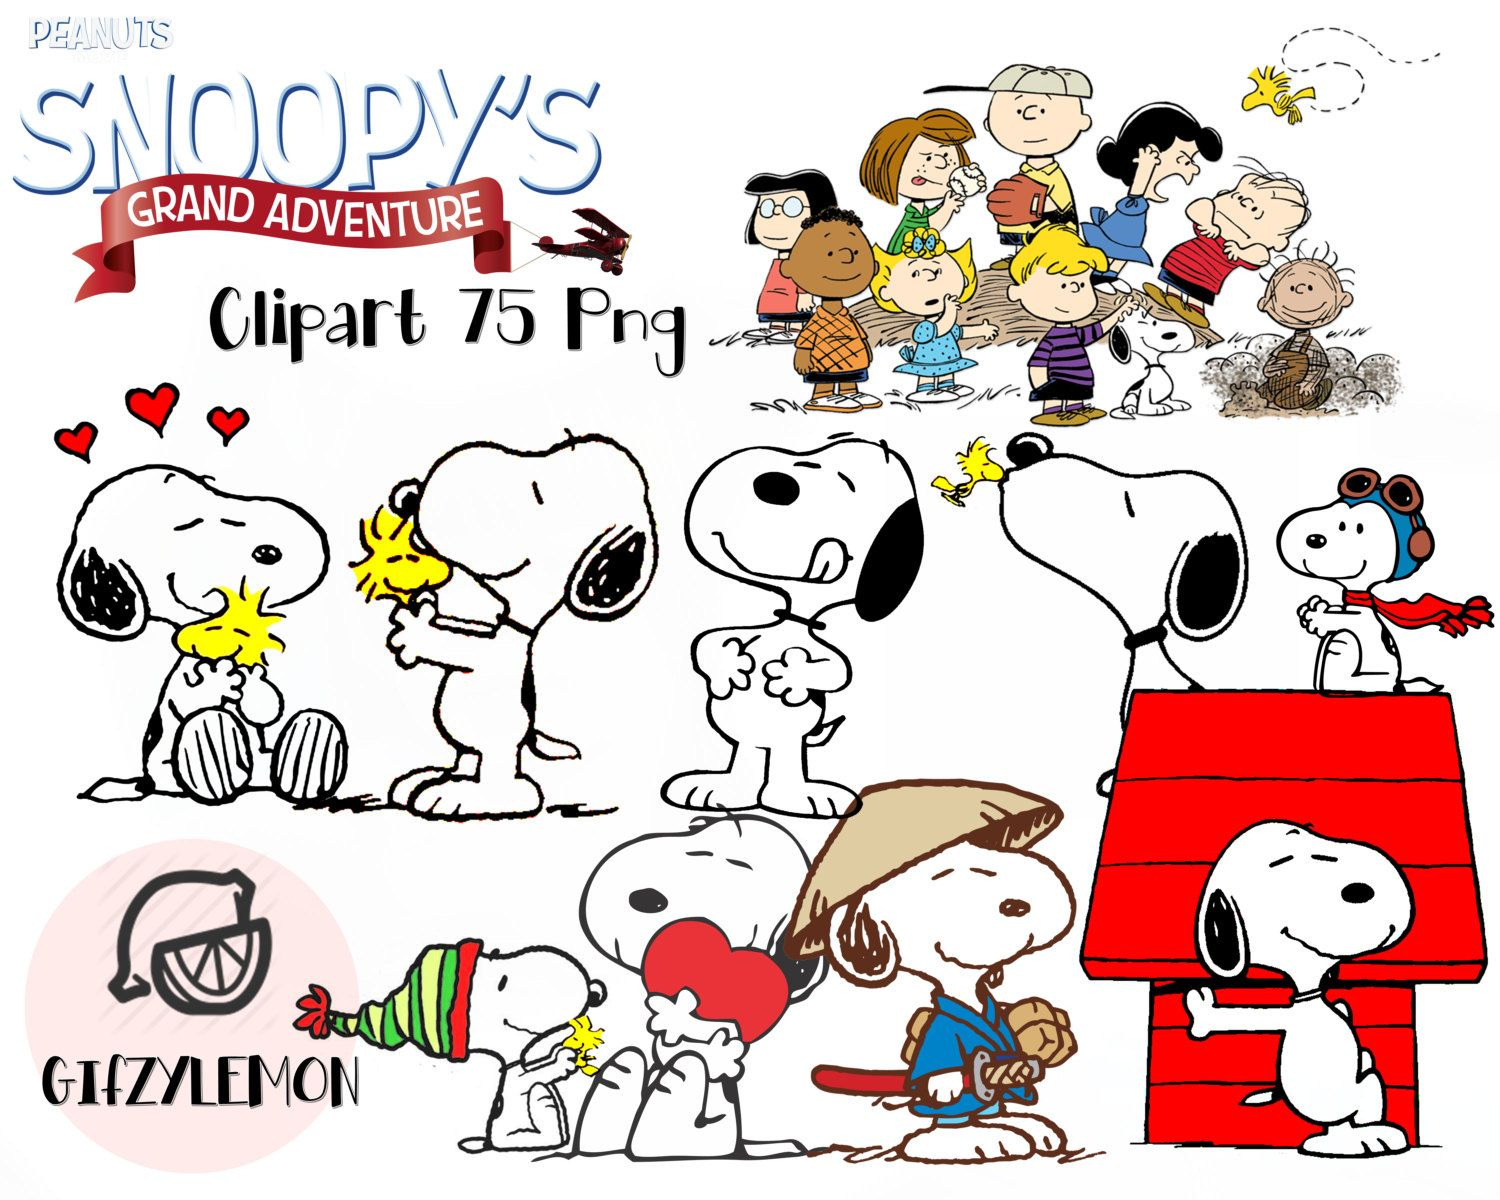 Snoopy and Charlie brown Clipart 75 PNG High Resolution Disney ...